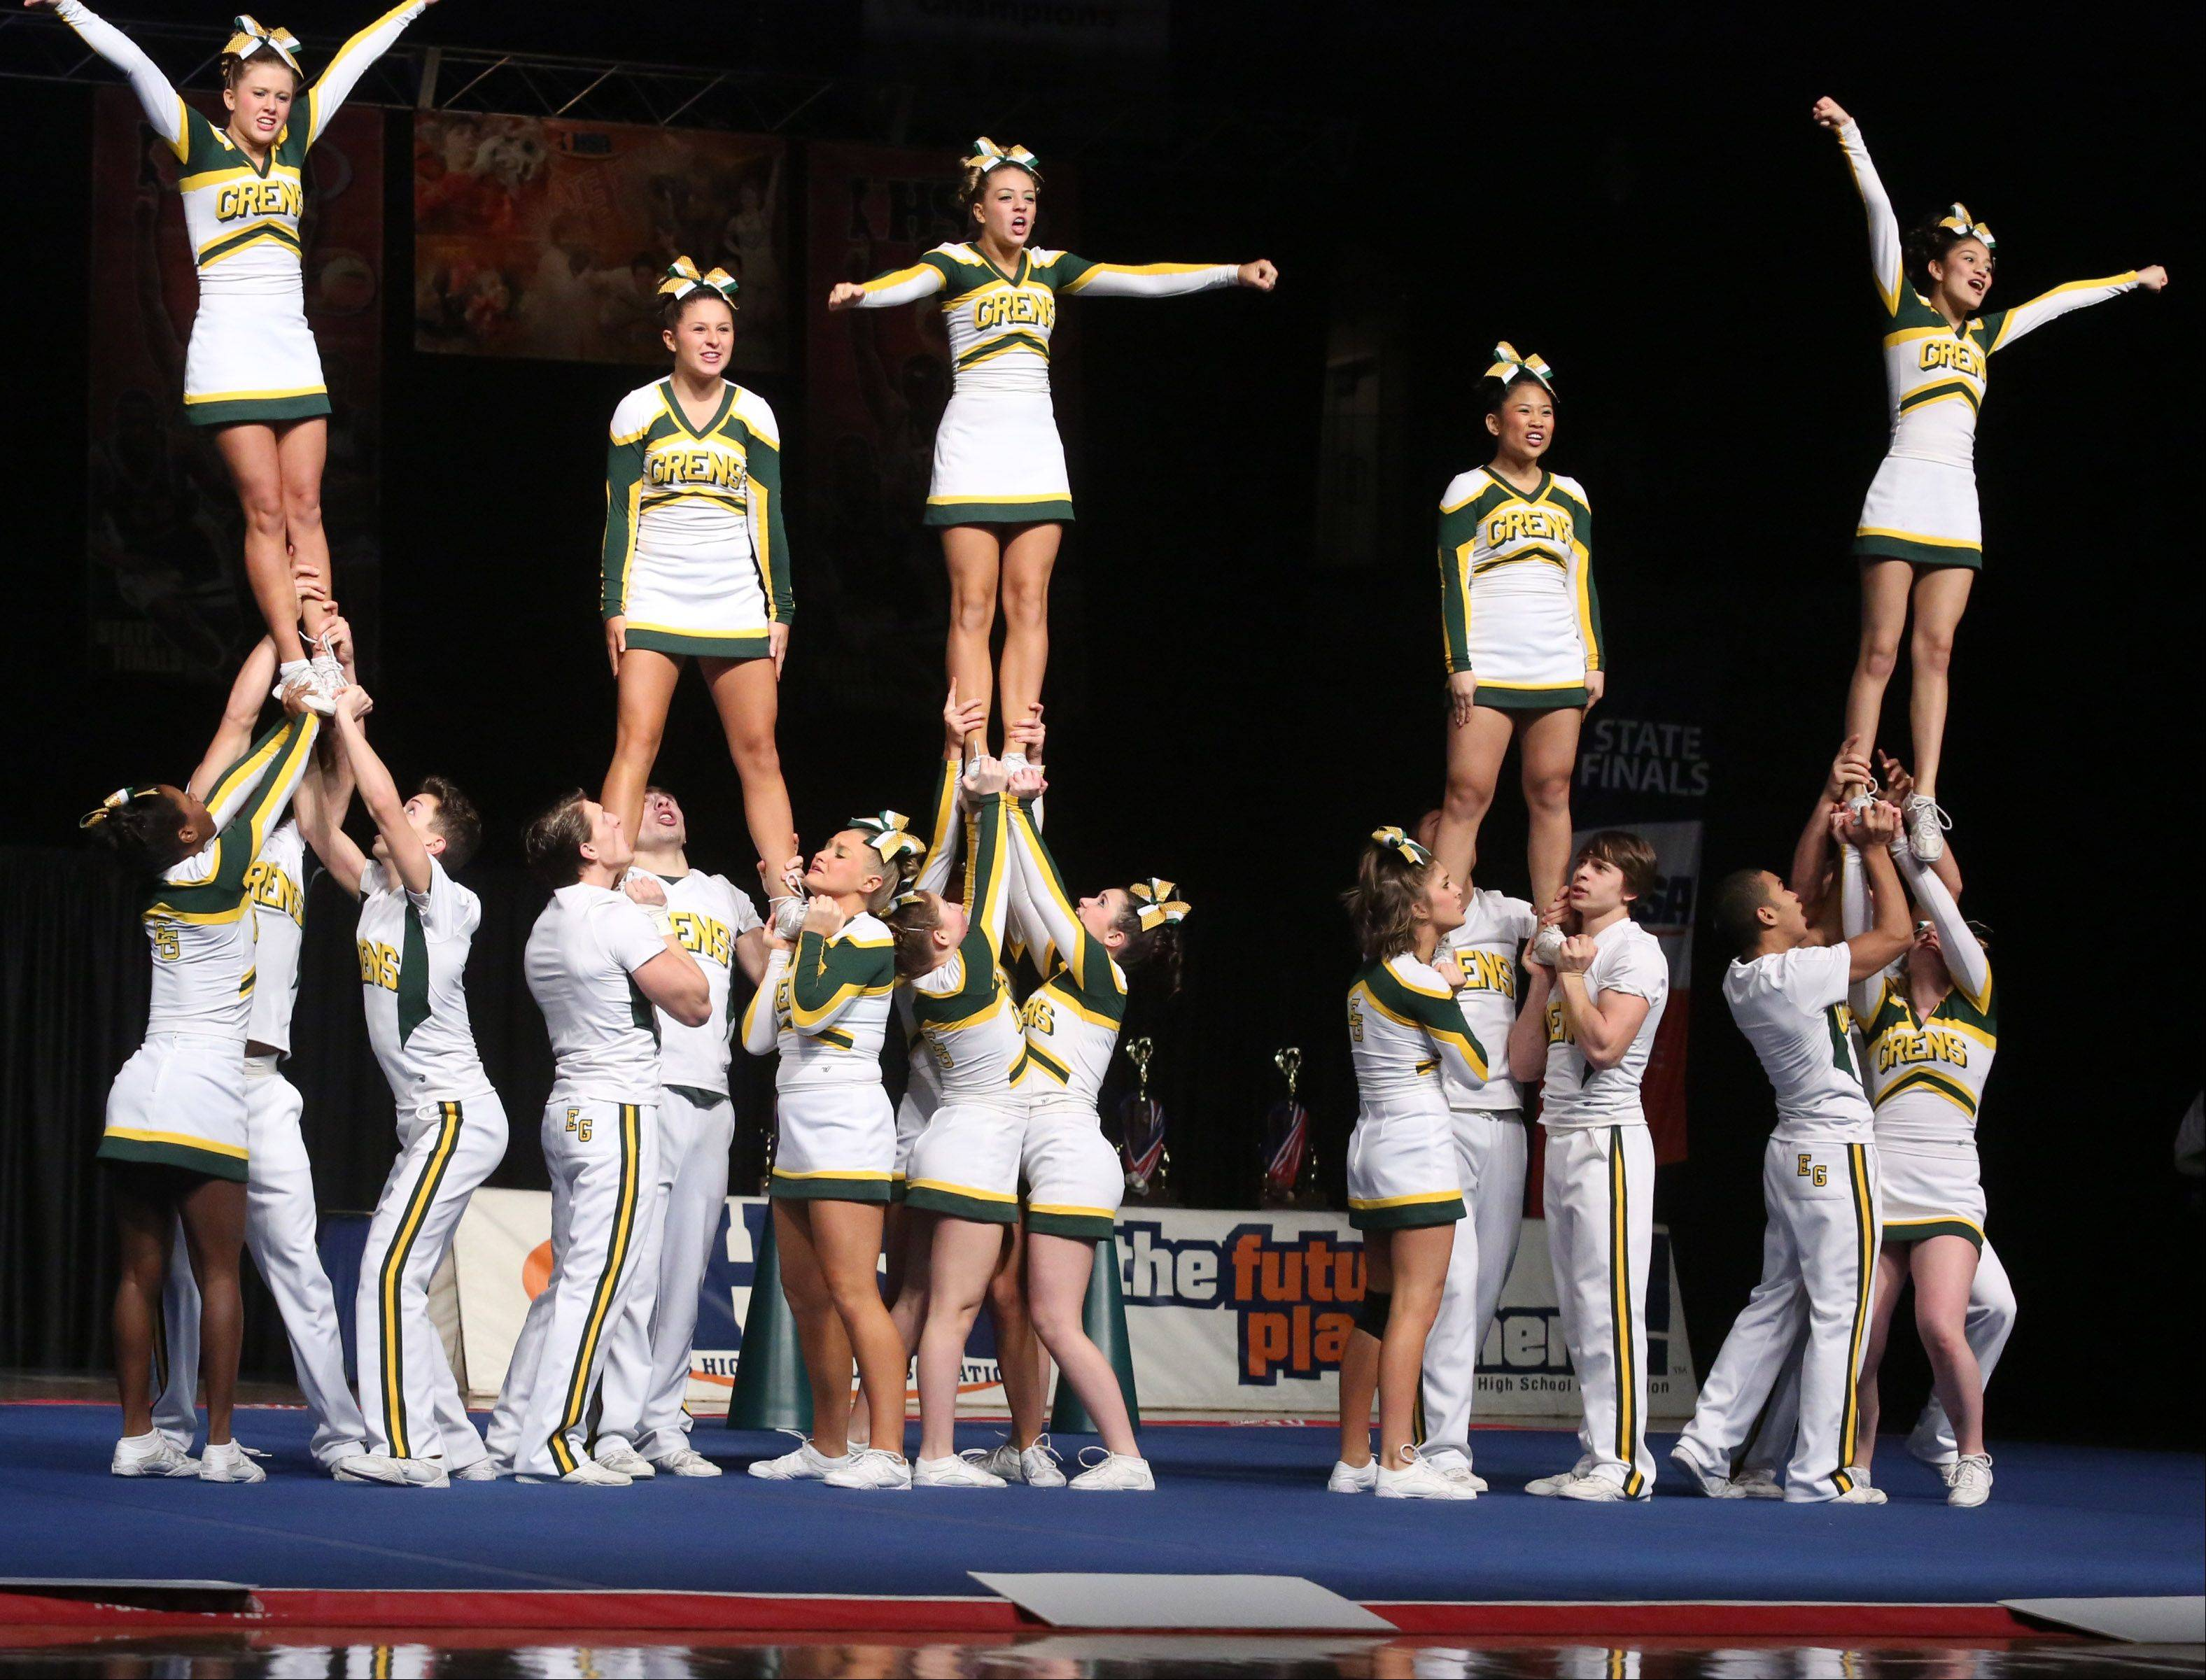 Elk Grove High School's cheer team performs in the coed team category.